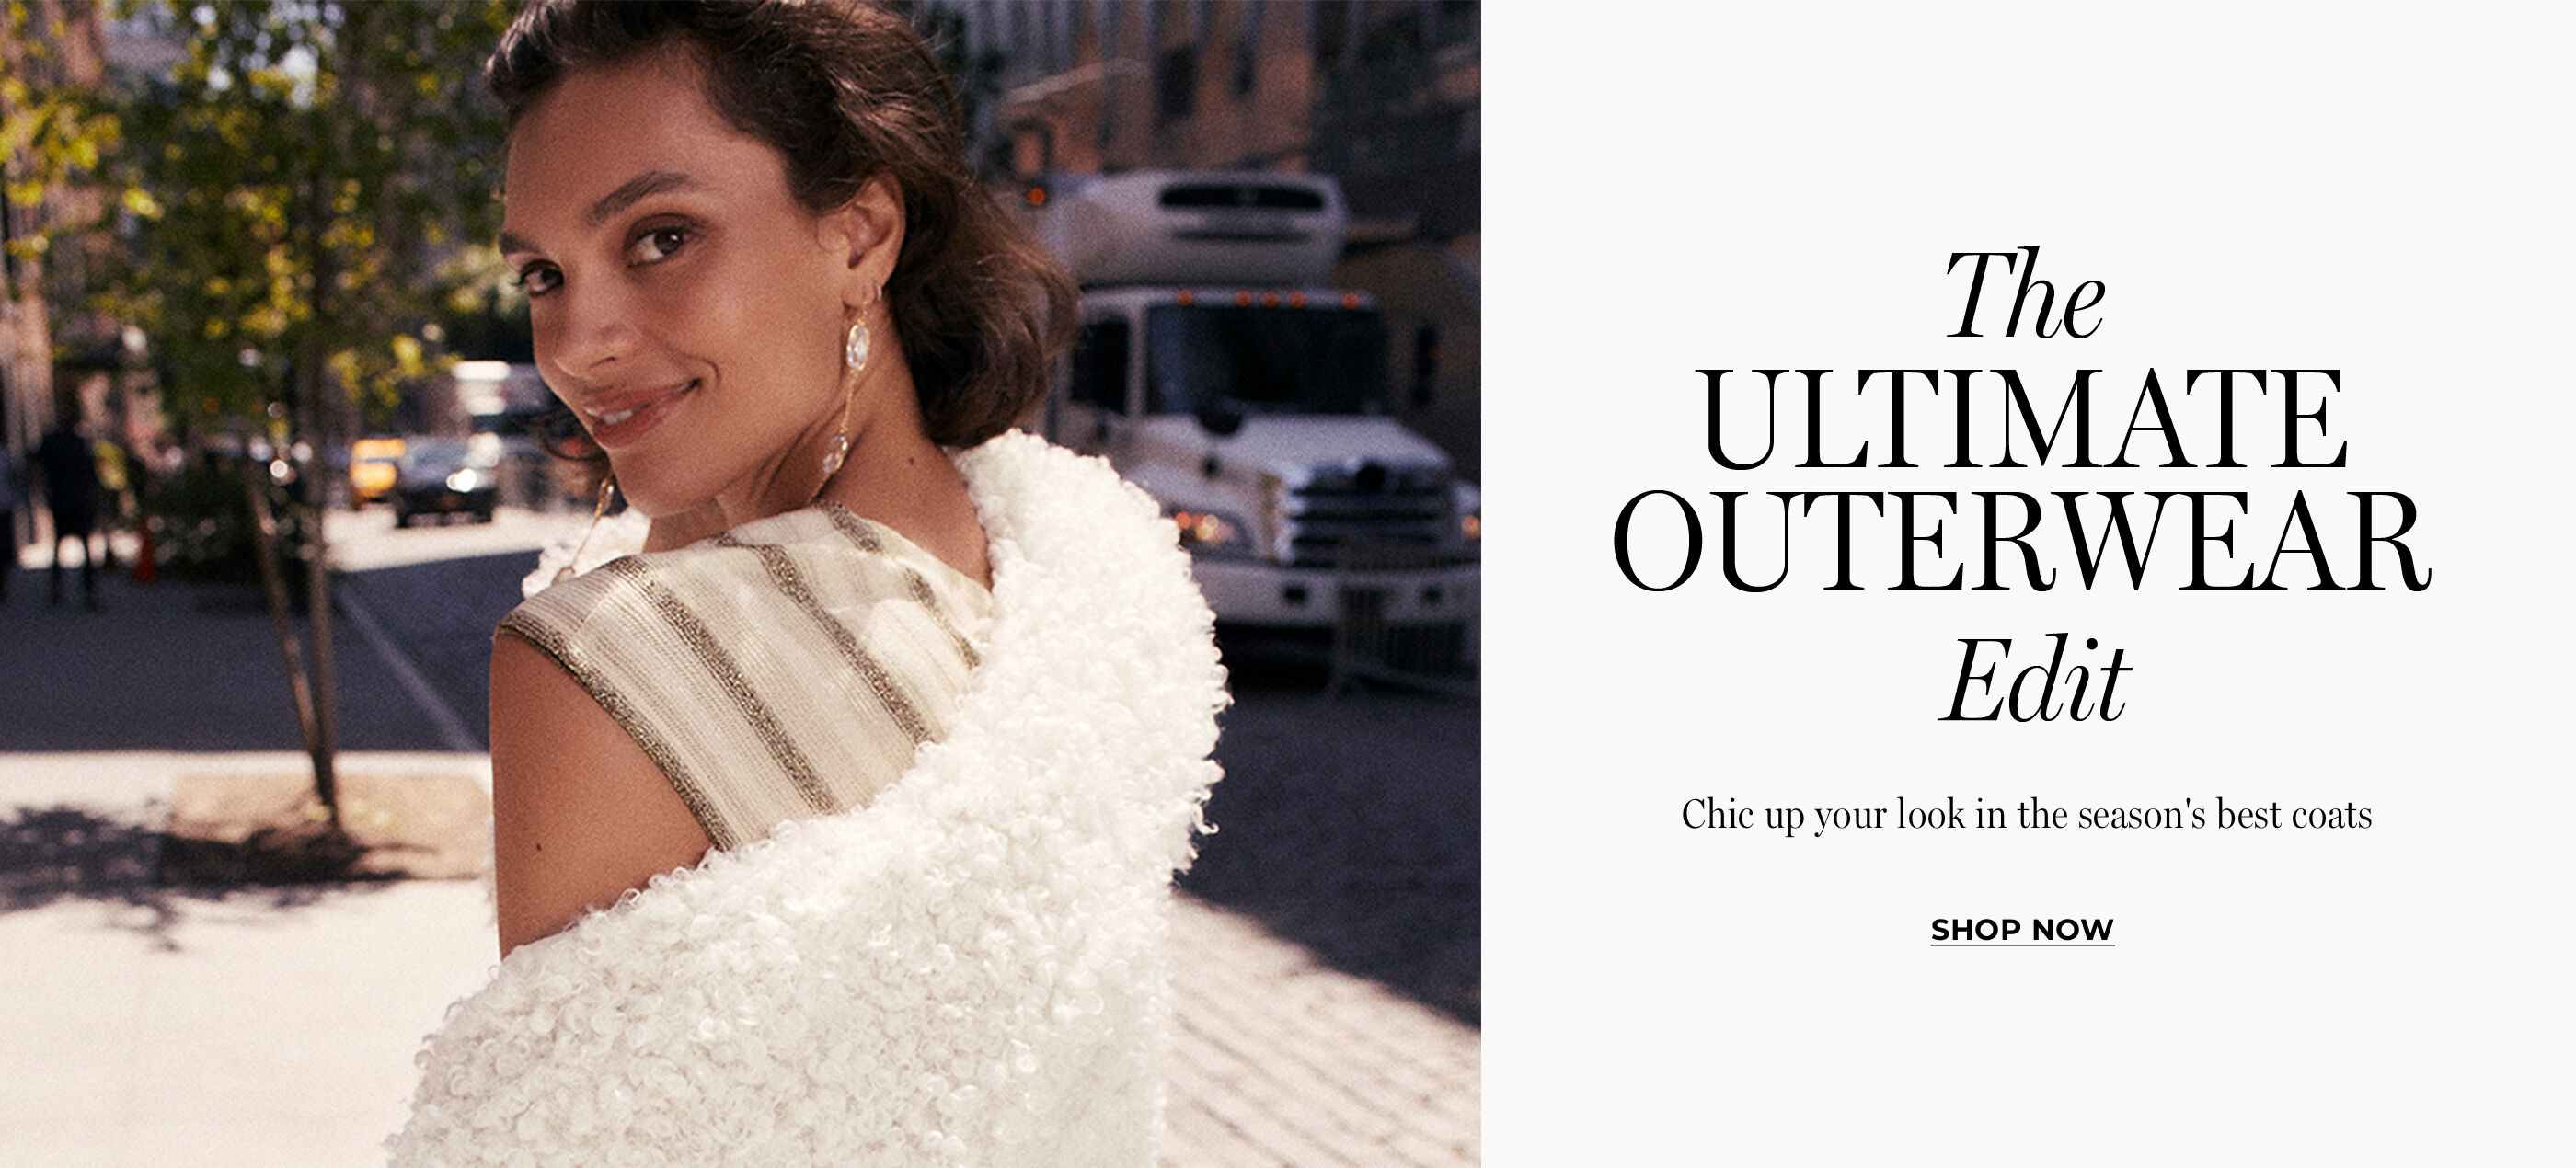 The Ultimate Outerwear Edit